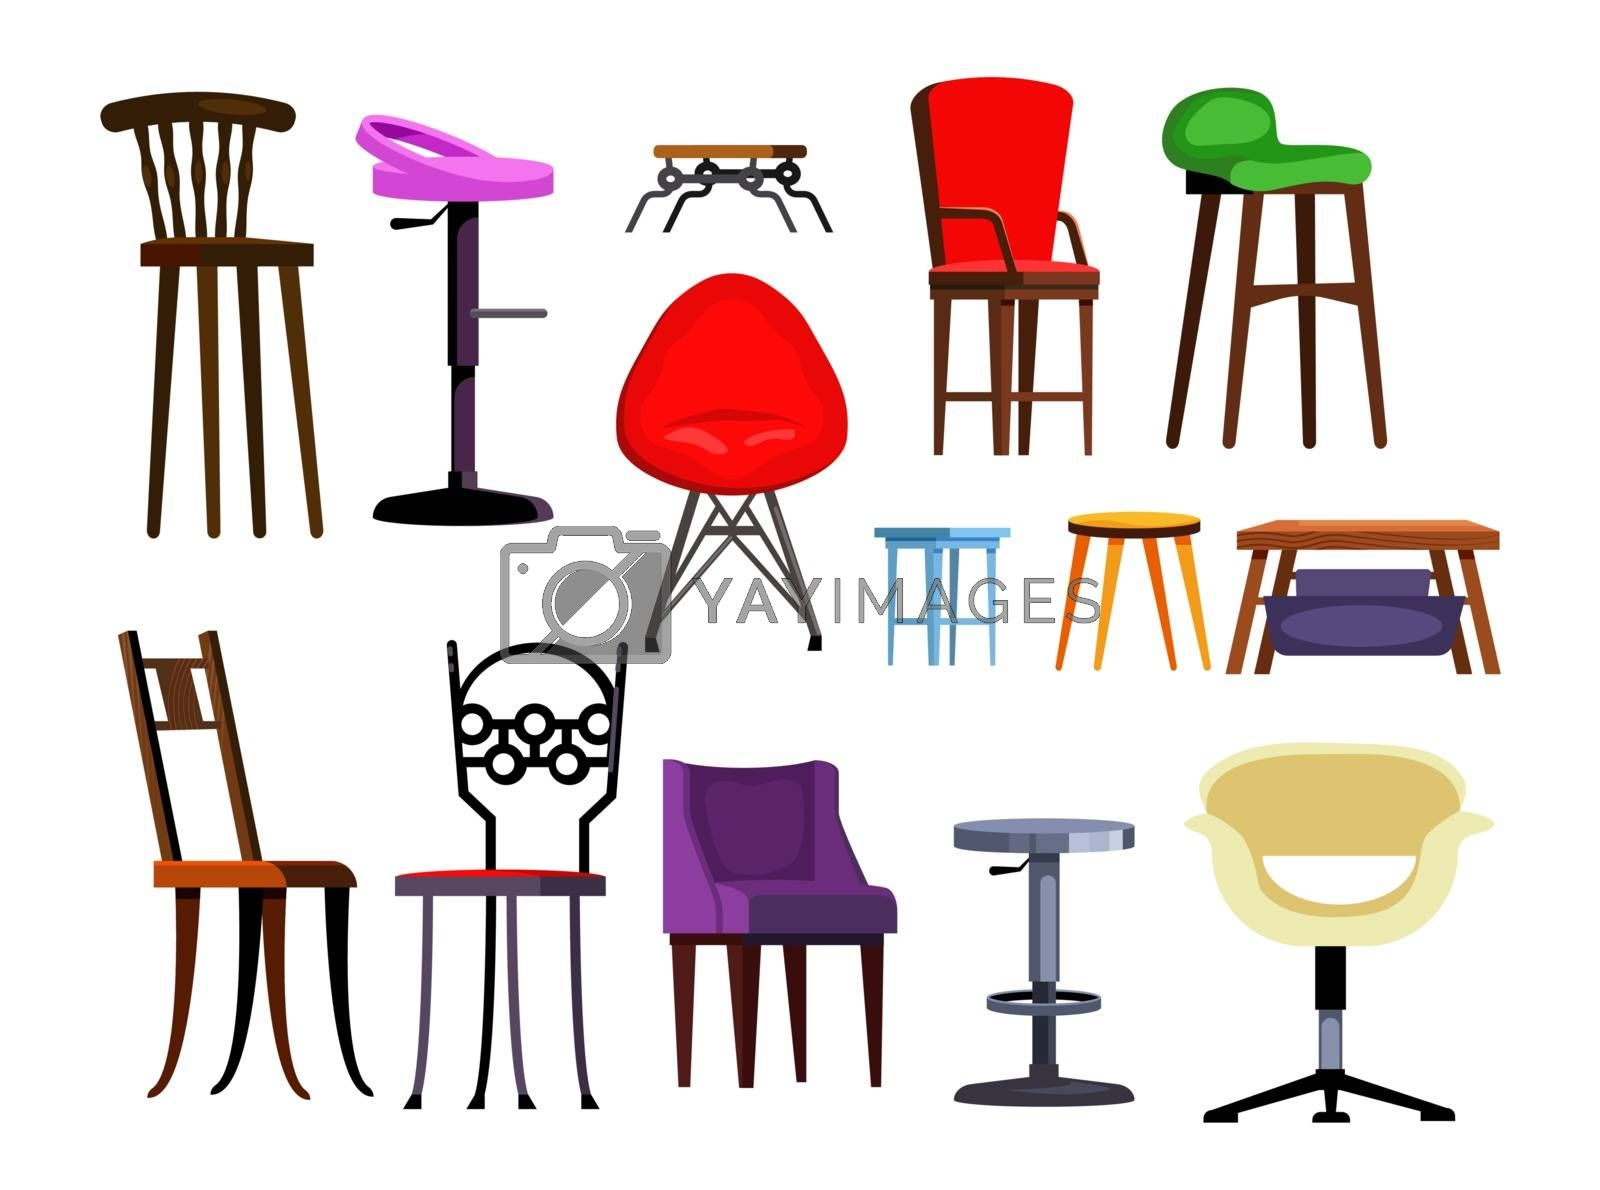 Chairs set illustration. Different chairs on white background. Can be used for topics like house interior, design, furniture